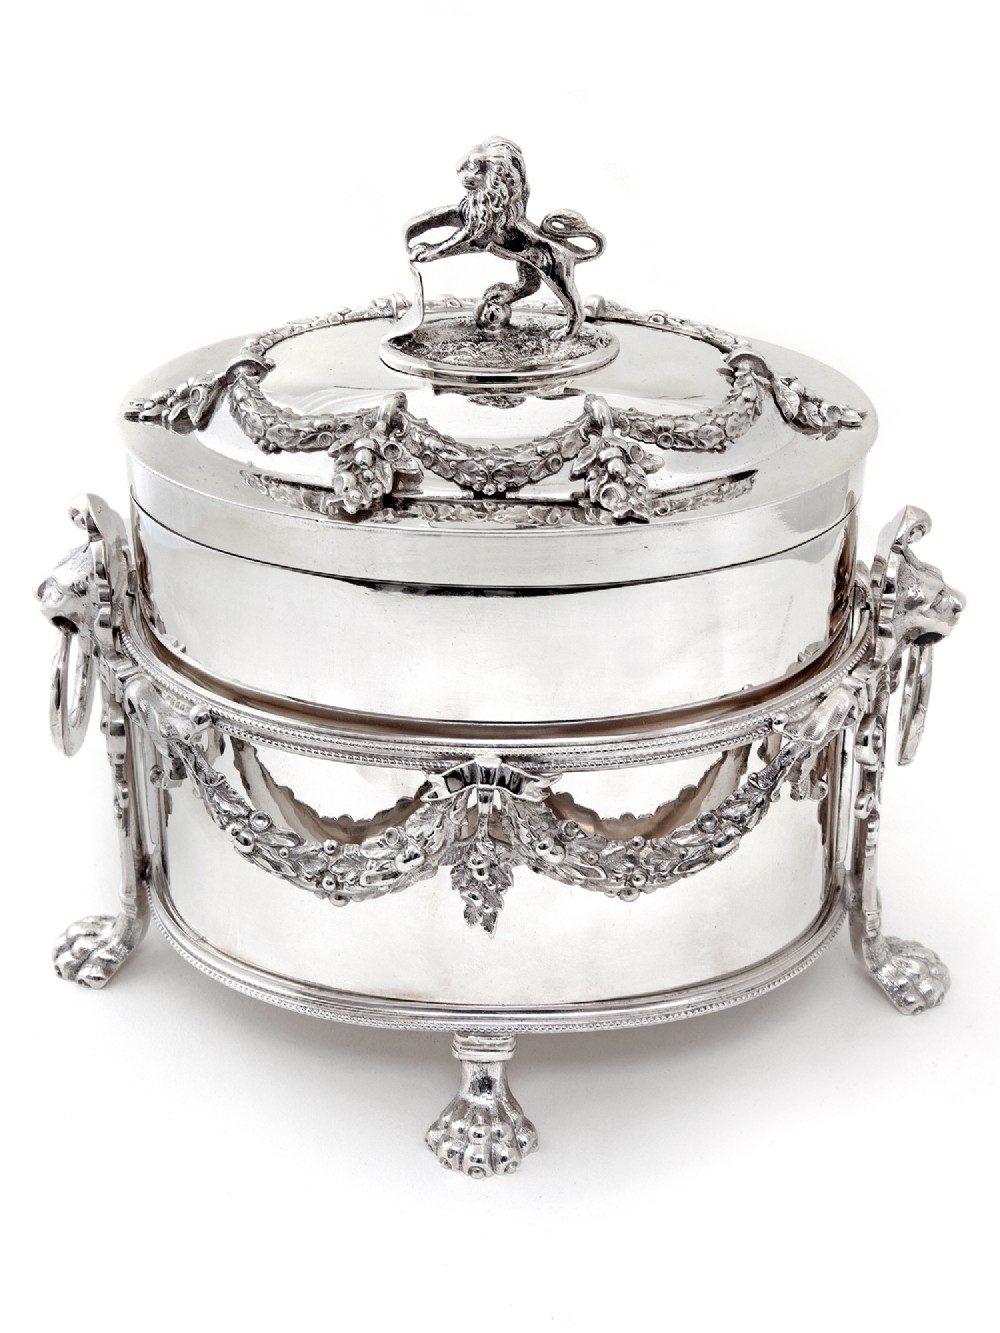 victorian atkin brothers silver plate box with lion finial and removable cast frame